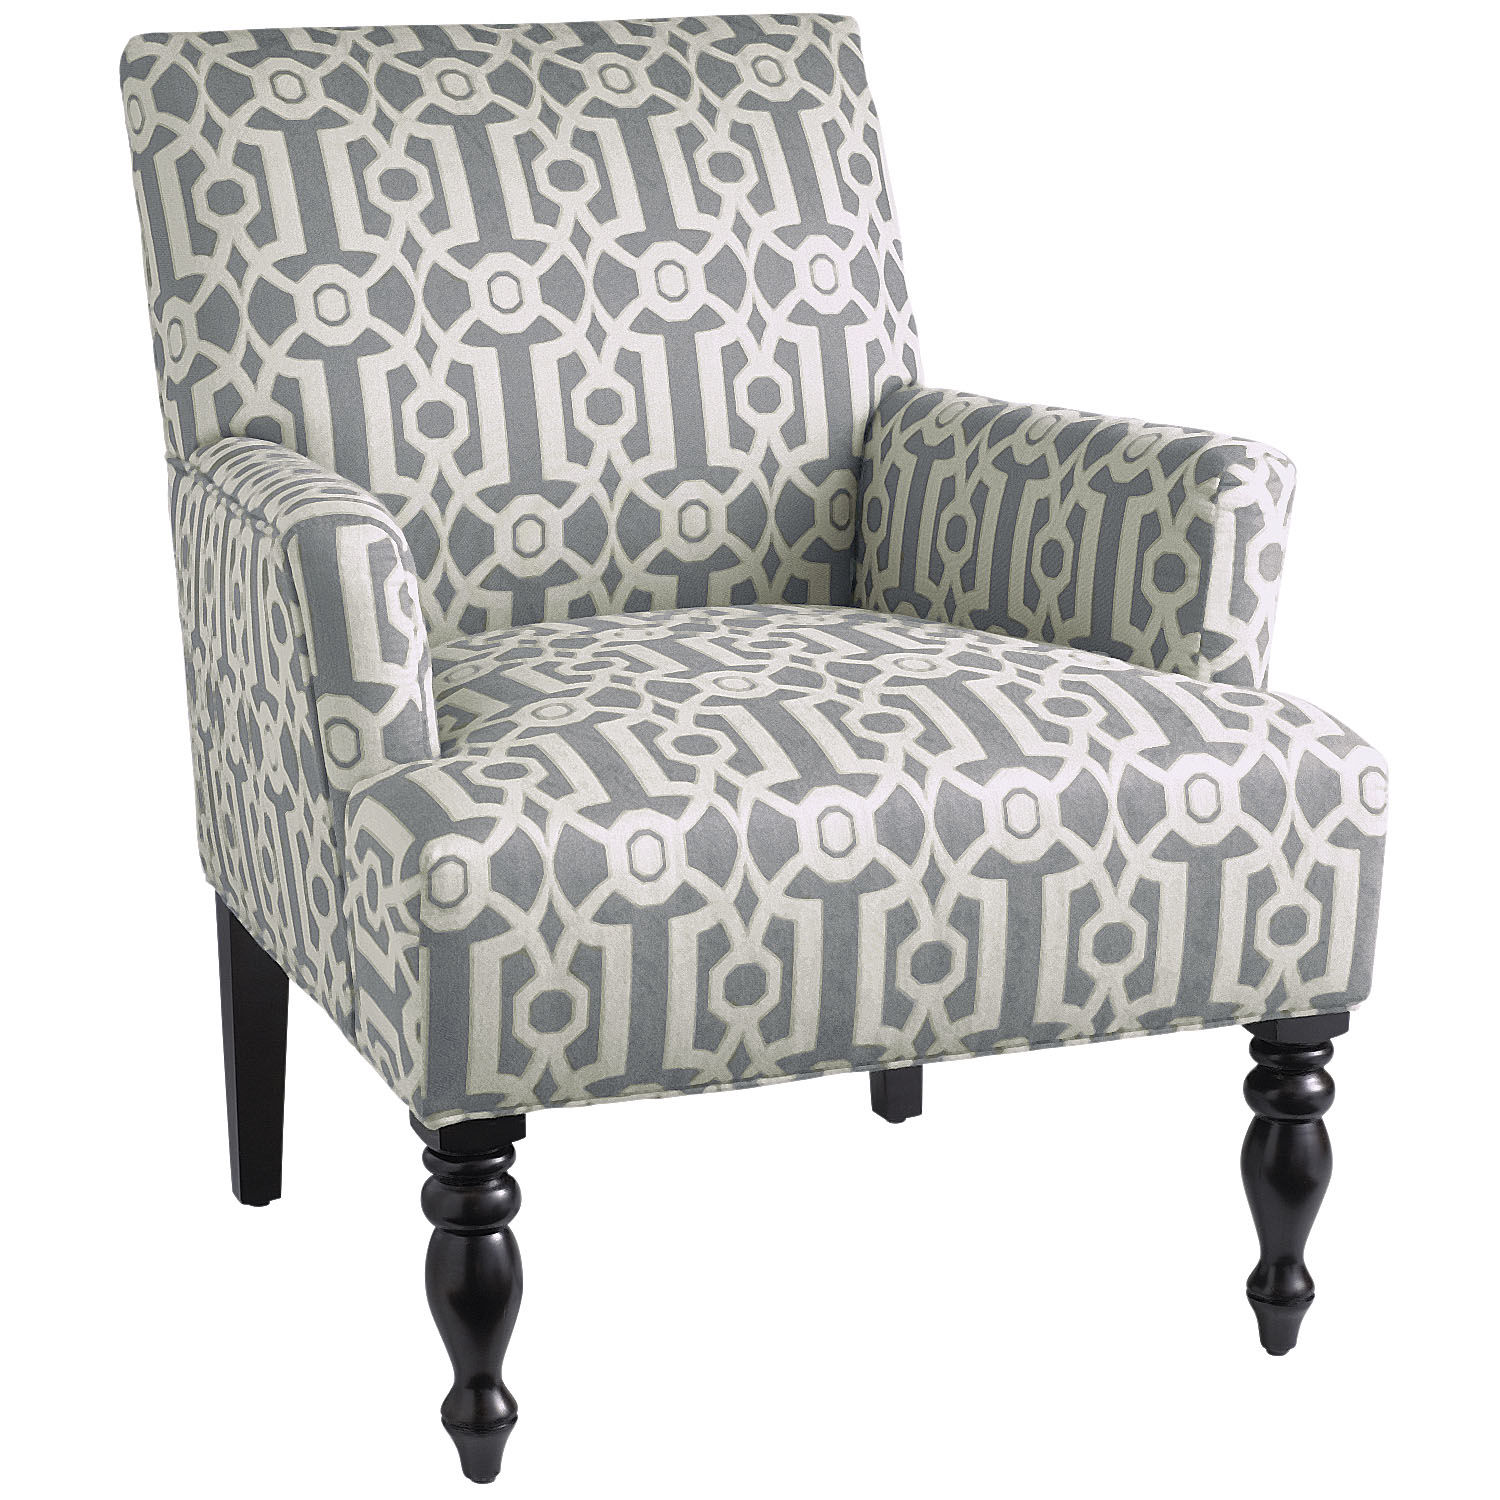 Liliana Armchair - Teal Ironwork